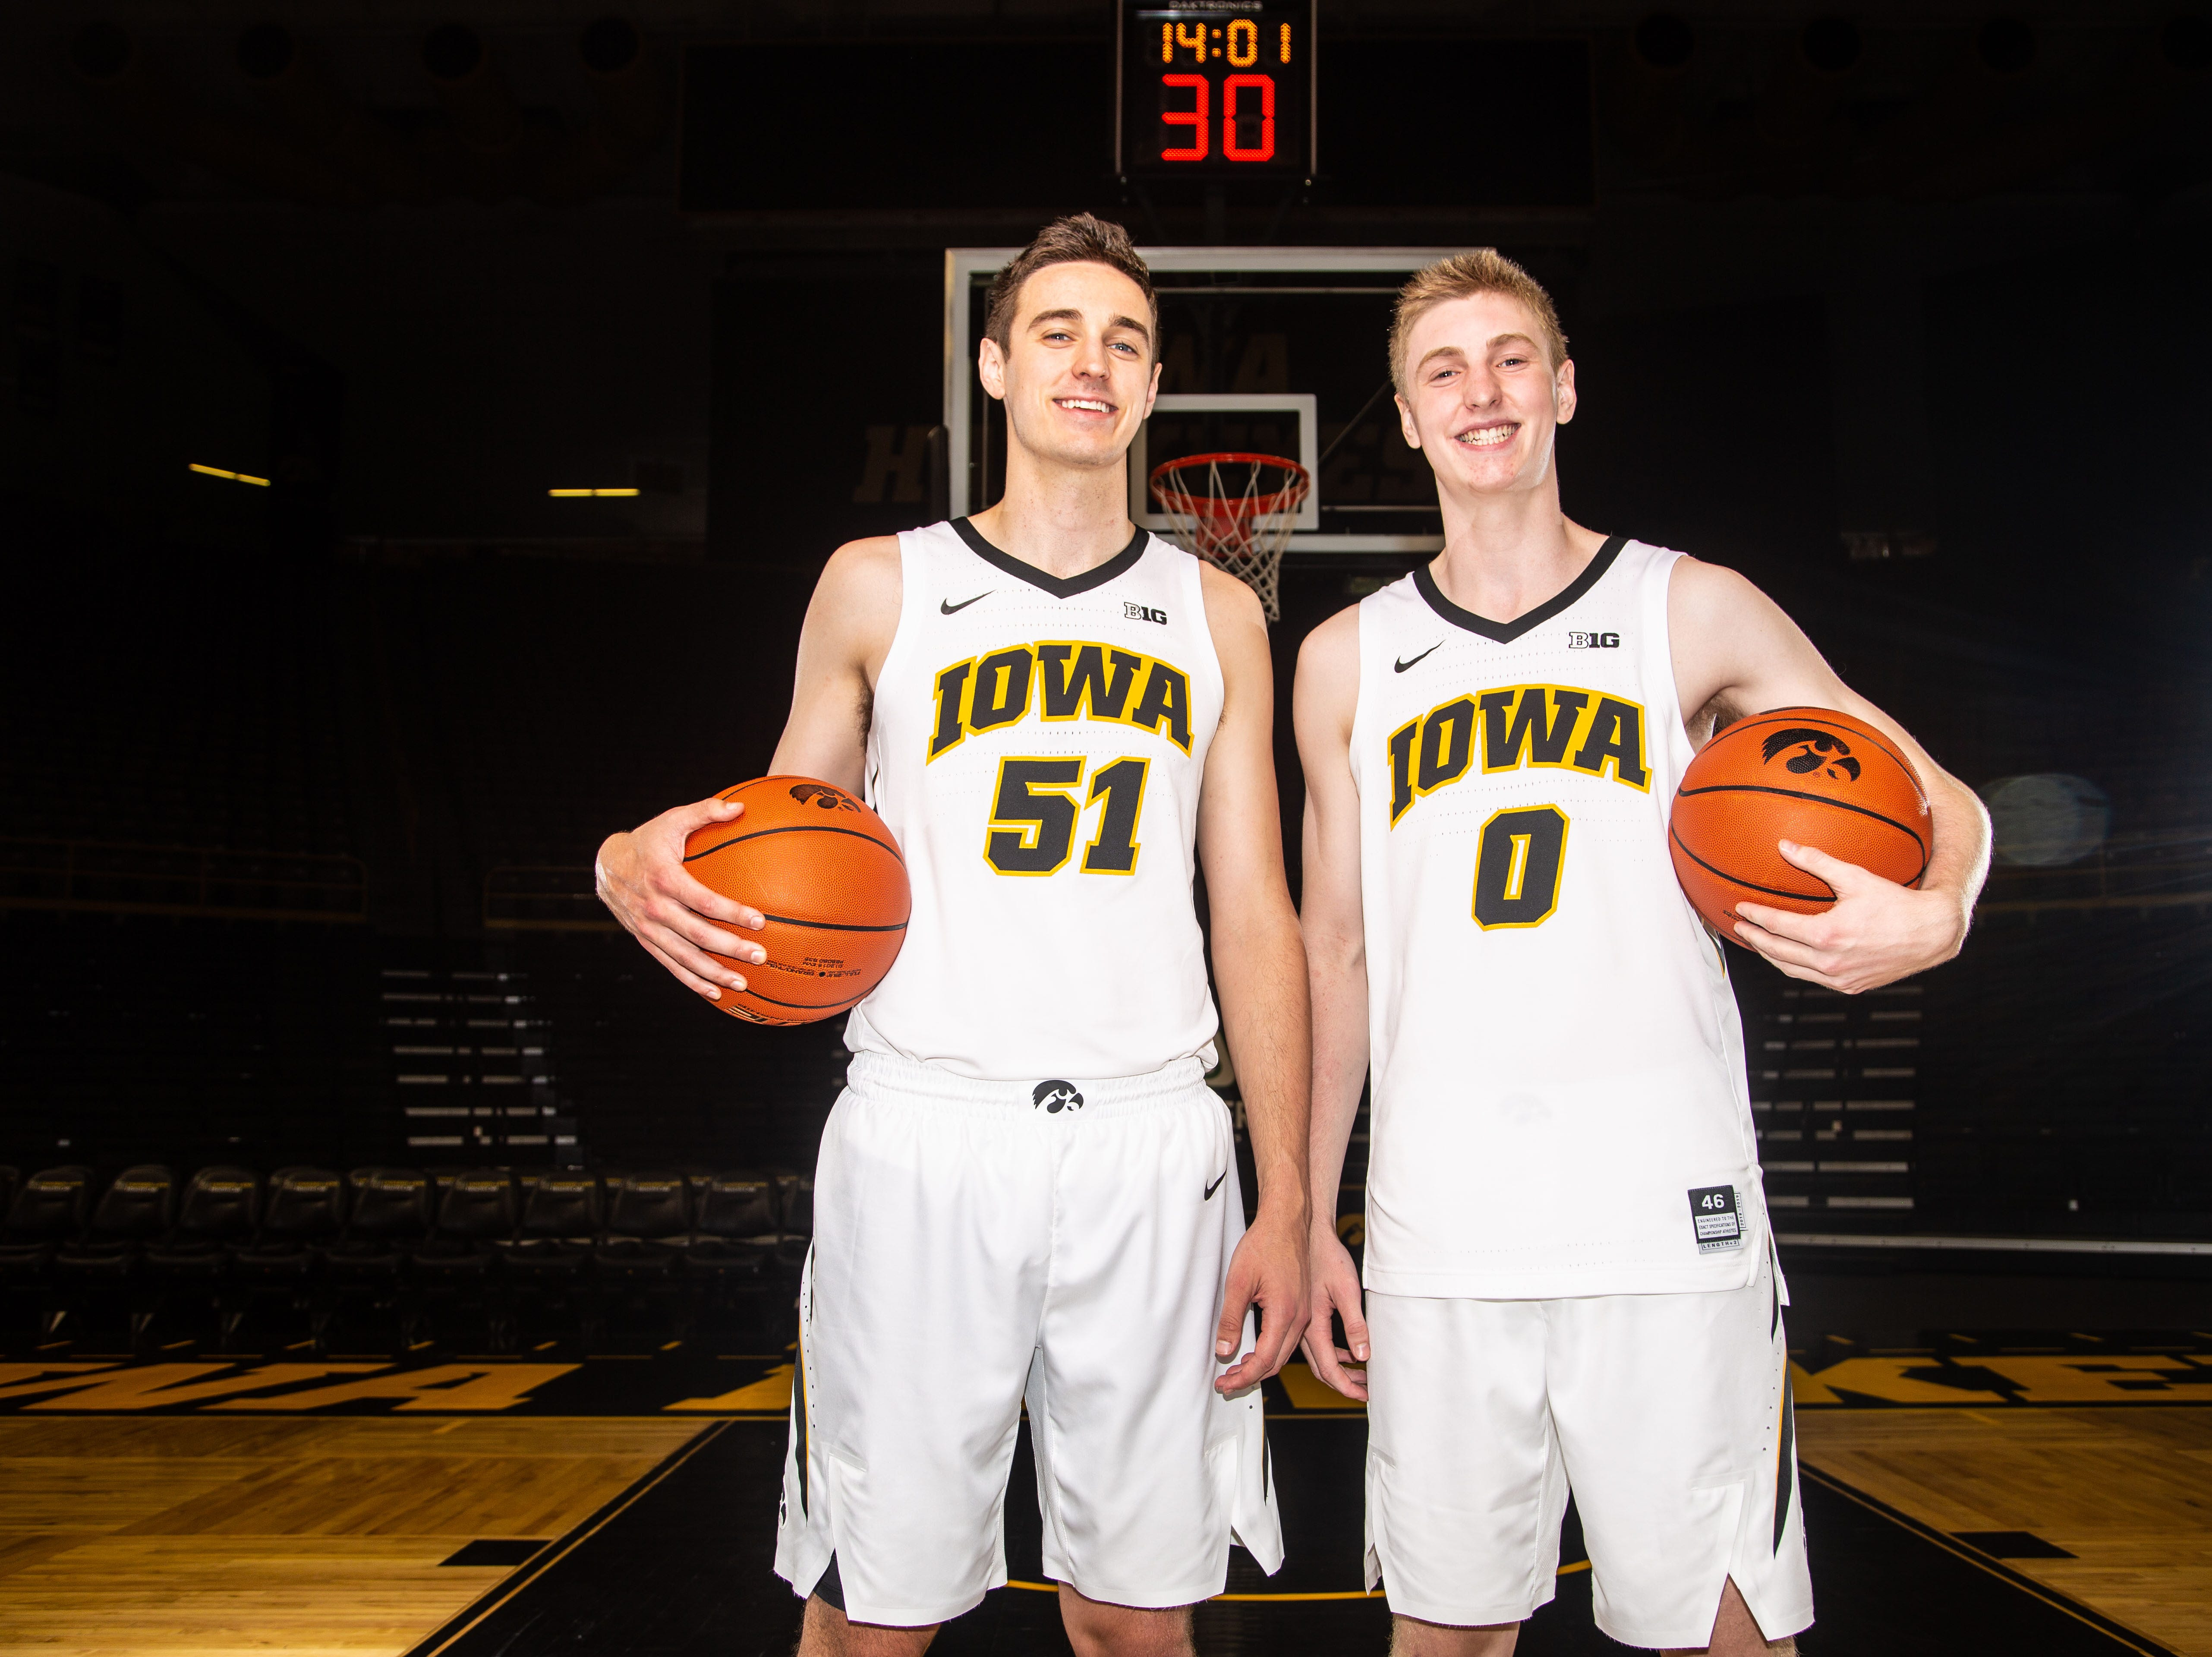 Iowa forward Nicholas Baer poses with his brother Iowa forward Michael Baer during Hawkeye media day at Carver Hawkeye ArenaMonday, Oct. 8, 2018.